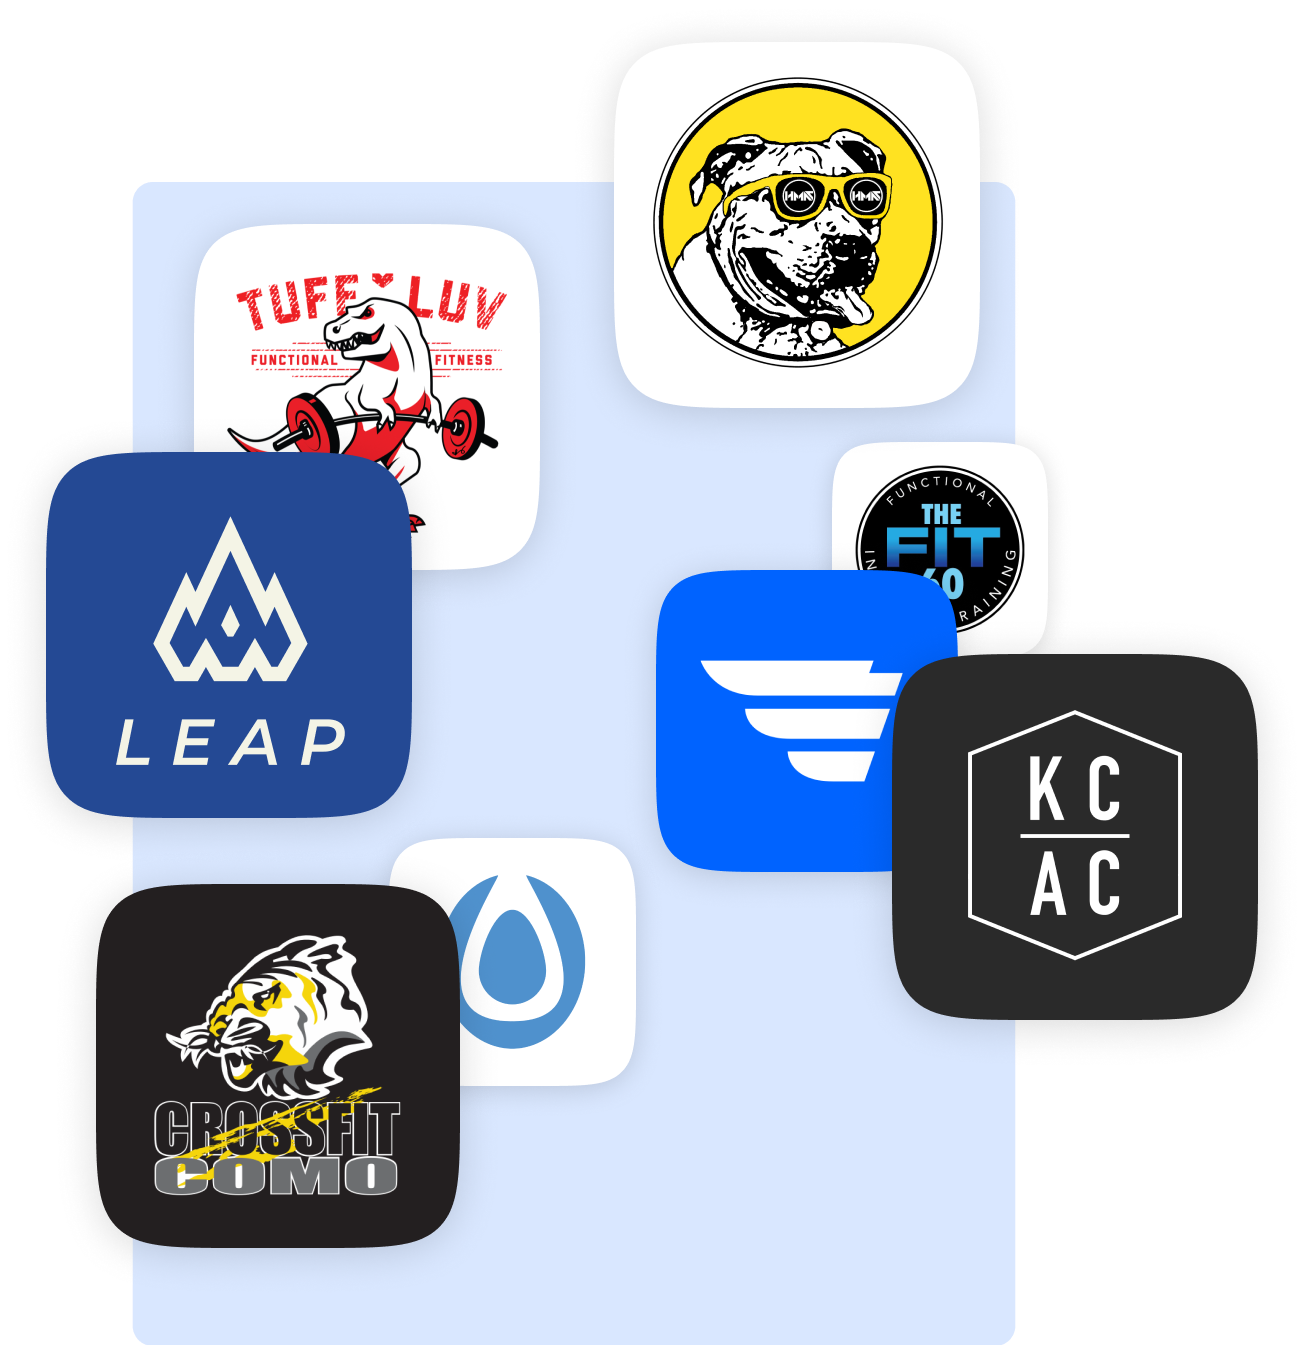 Logos of the best gym branded app clients